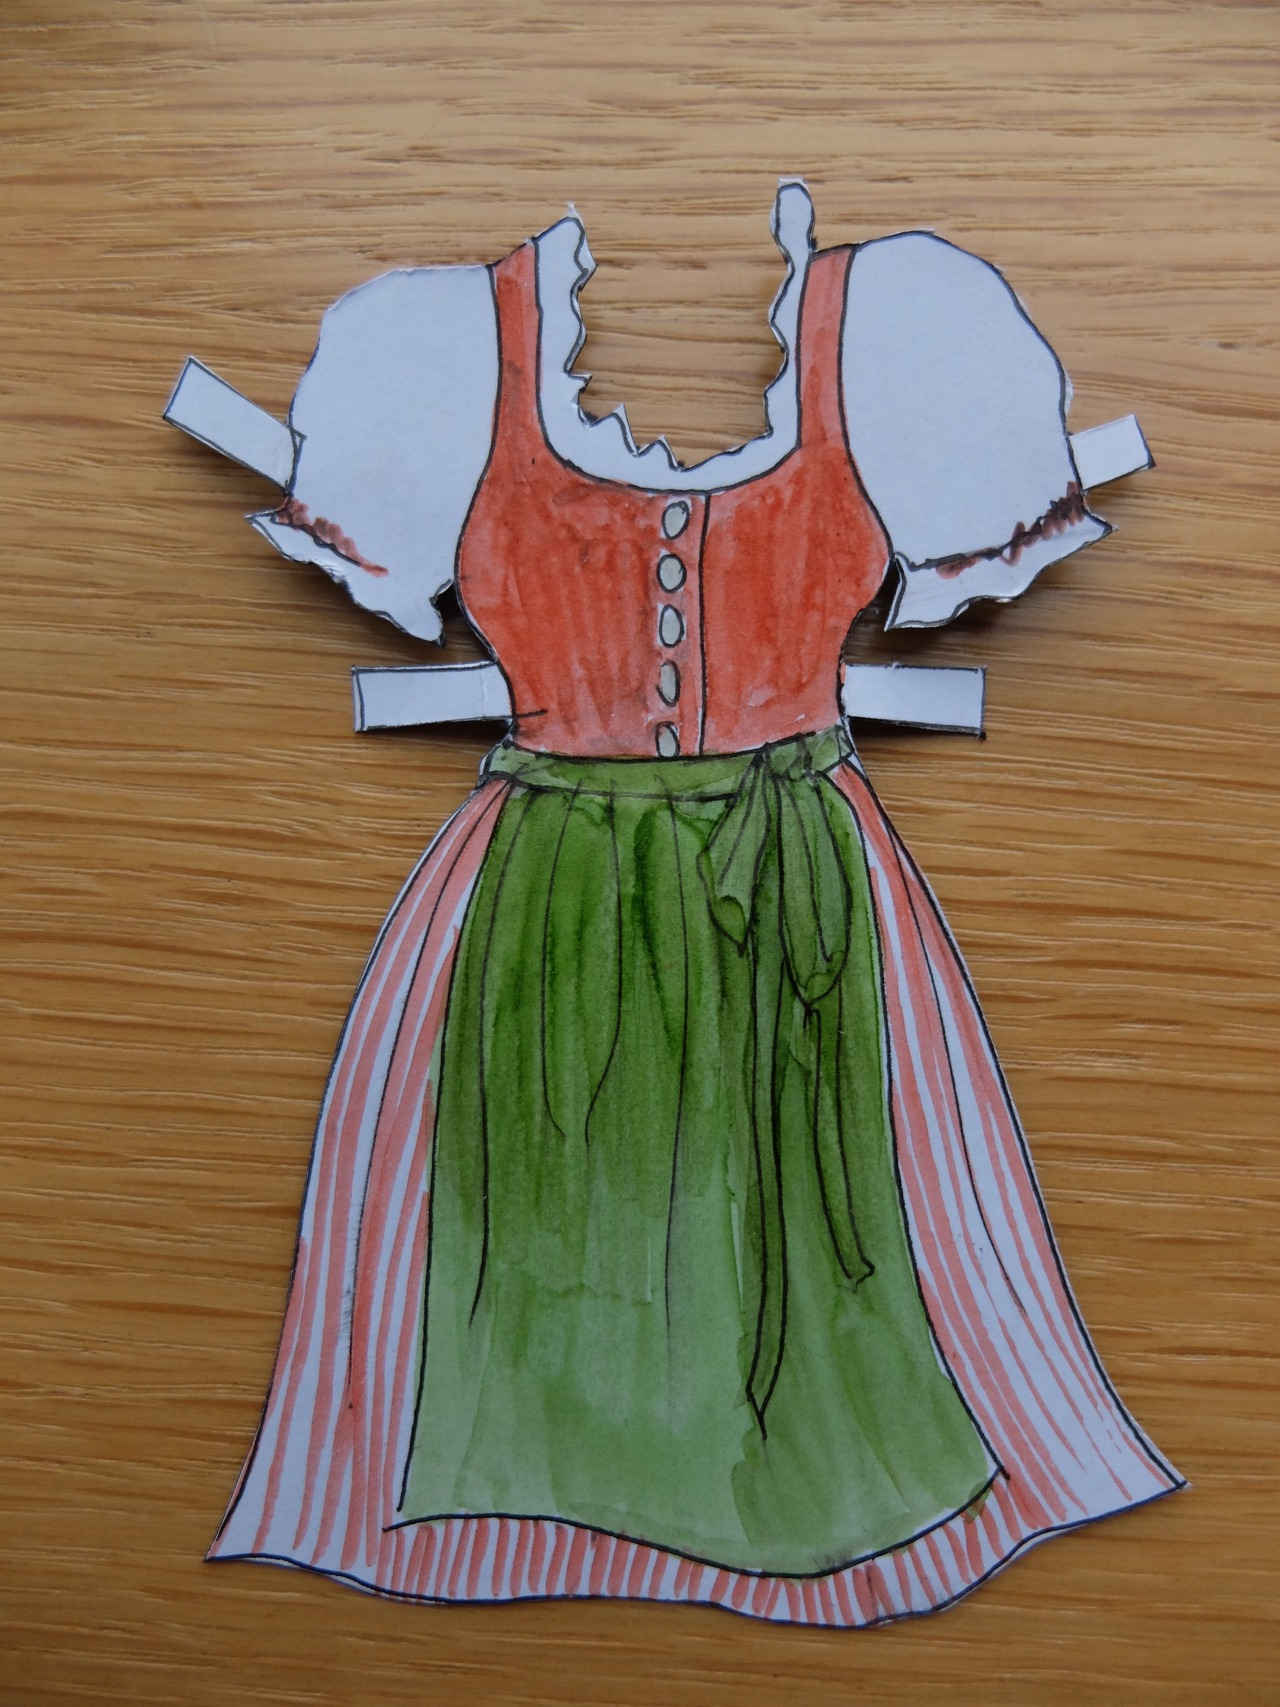 mangia minga // 'birthday voucher for a home-sewn Dirndl'